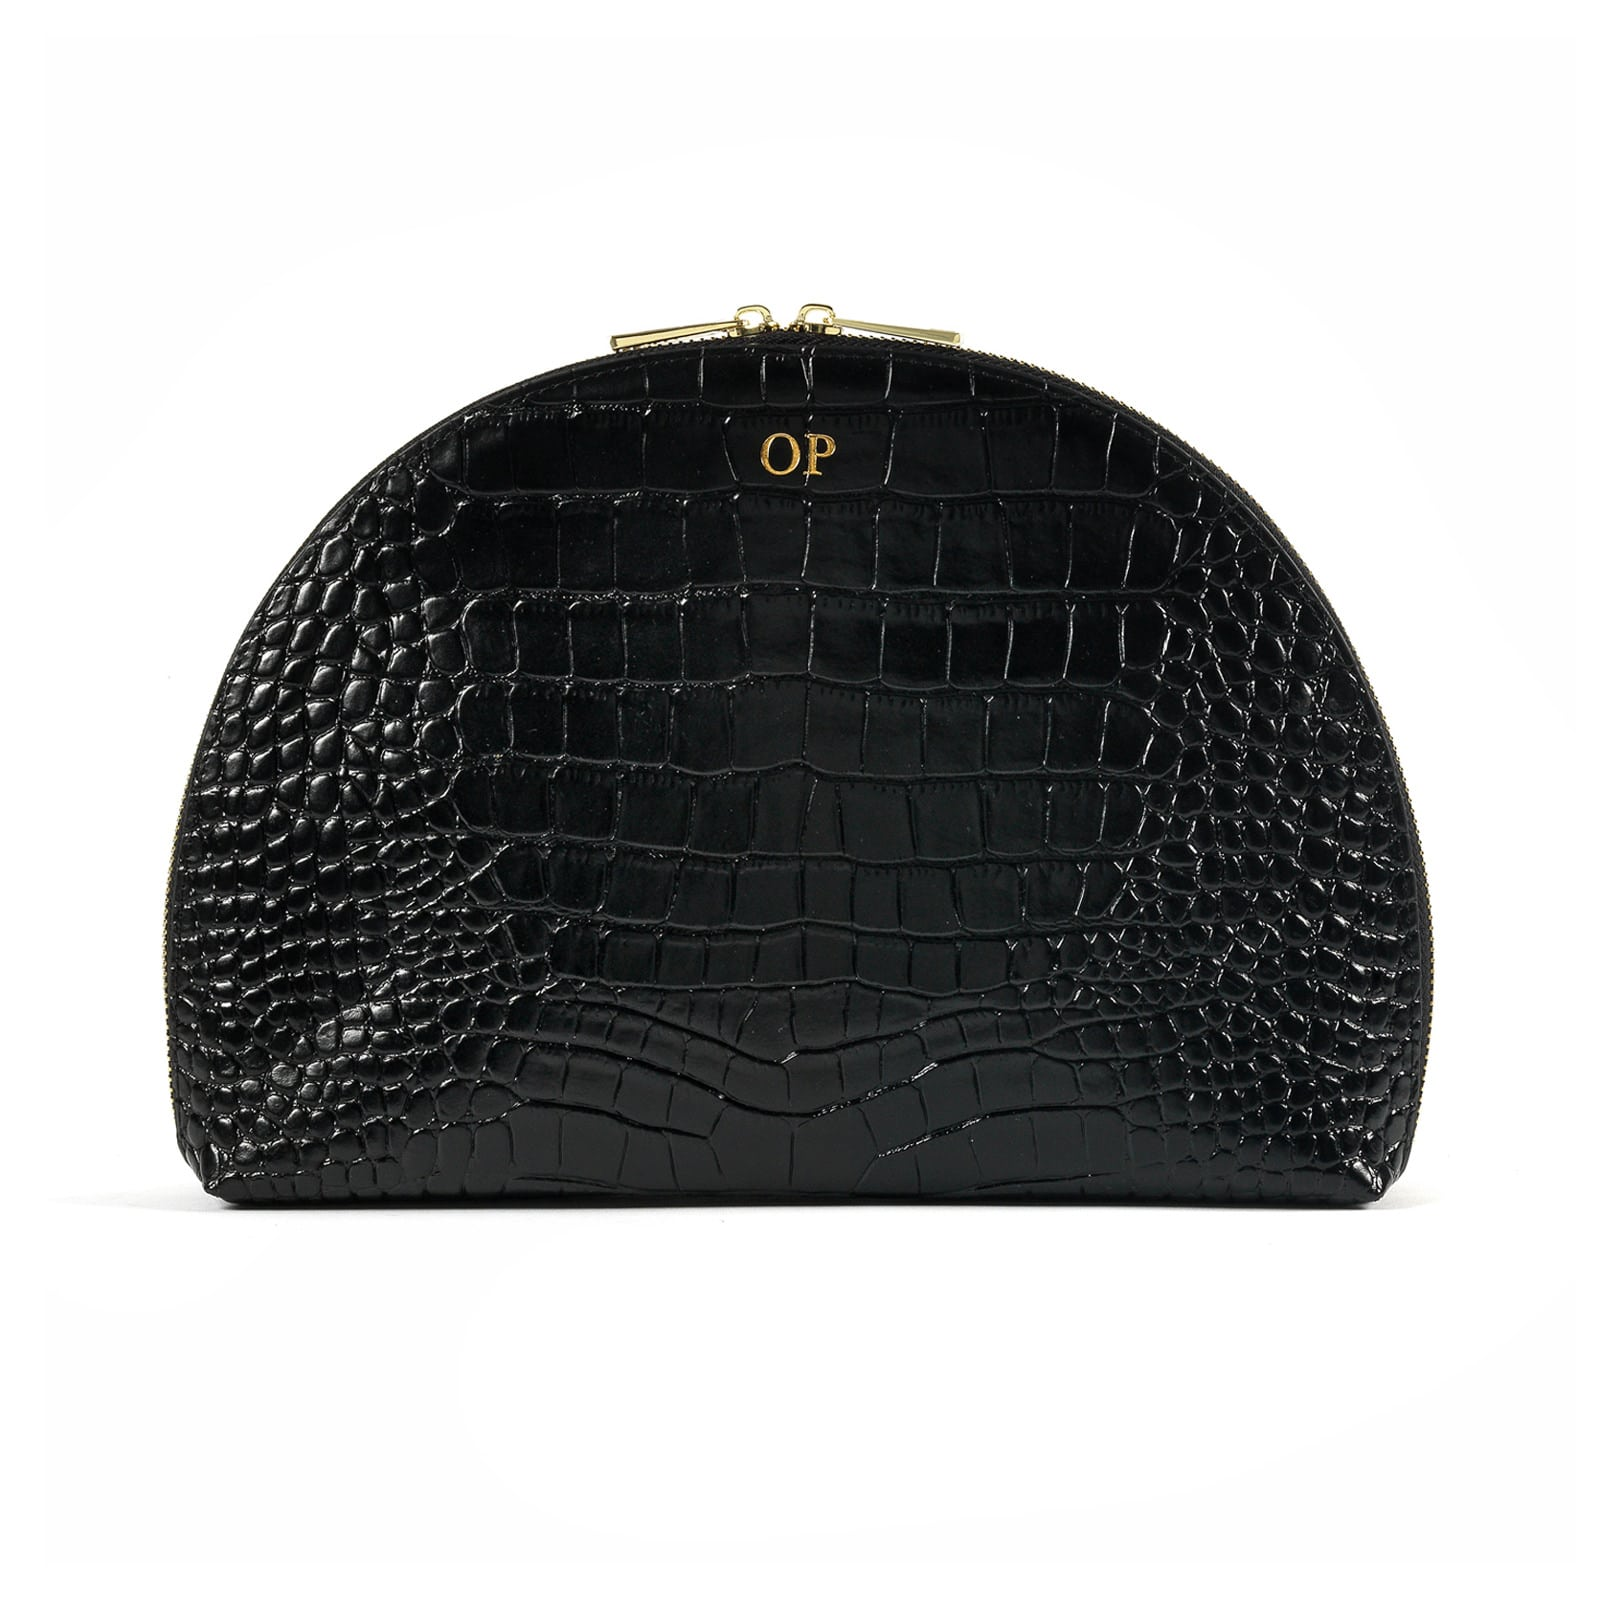 Personalised Black Croc Leather Half Moon Clutch